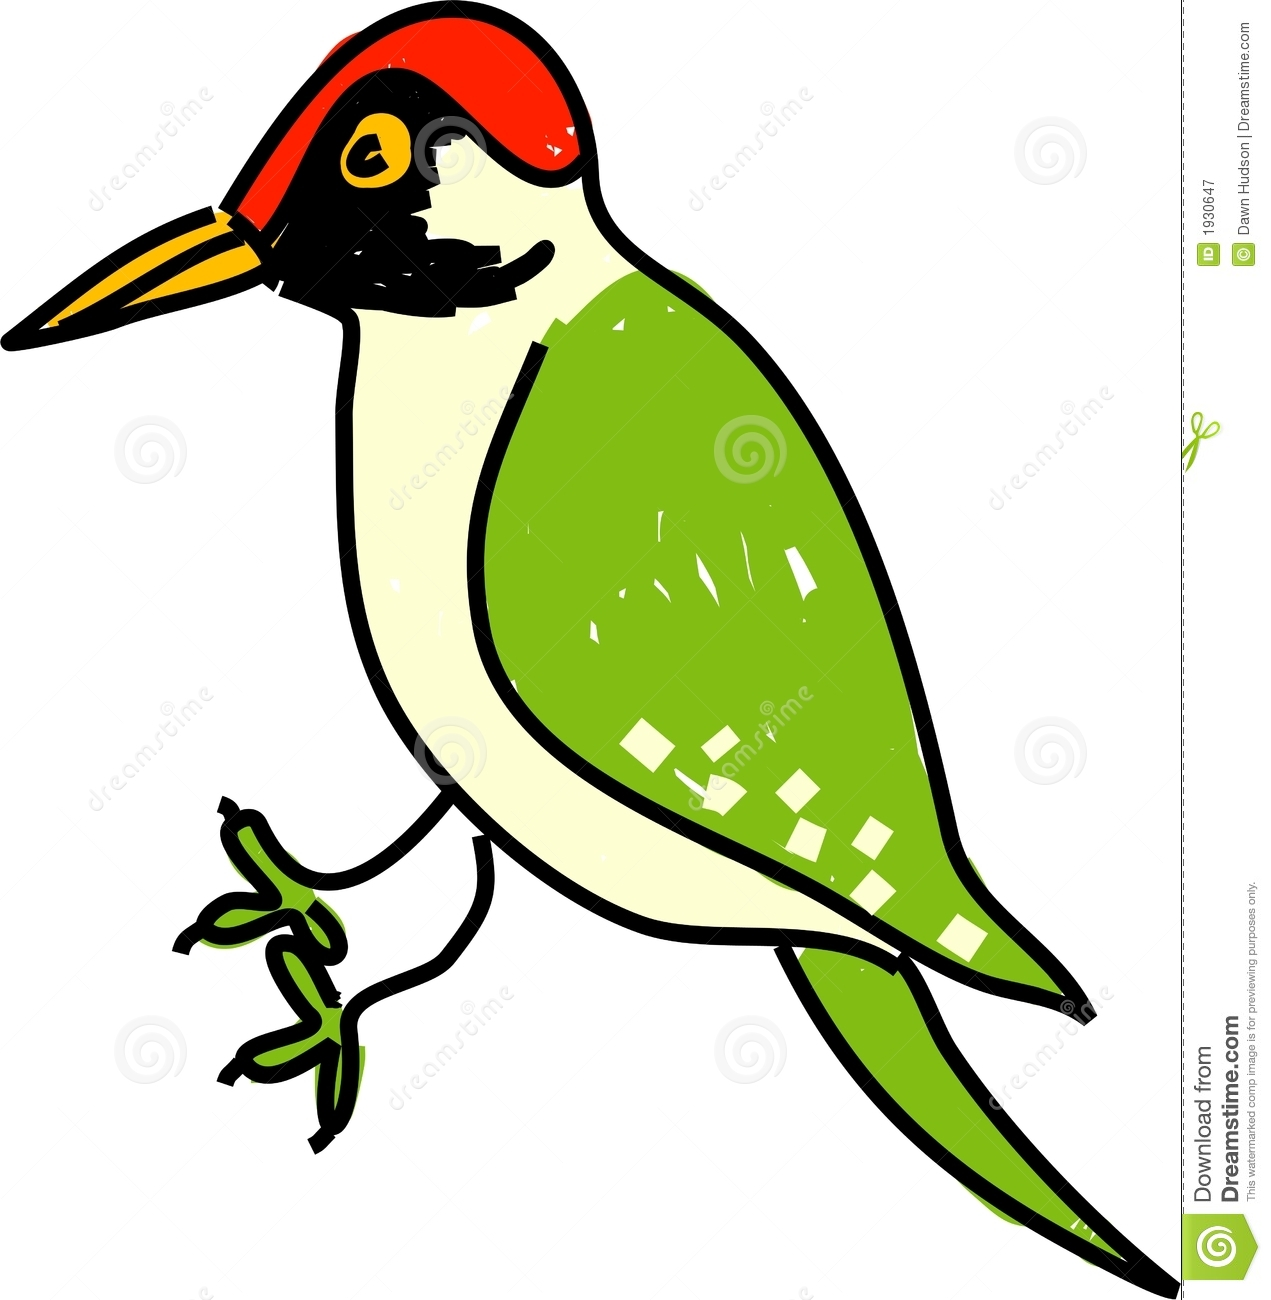 Woodpecker clipart #9, Download drawings